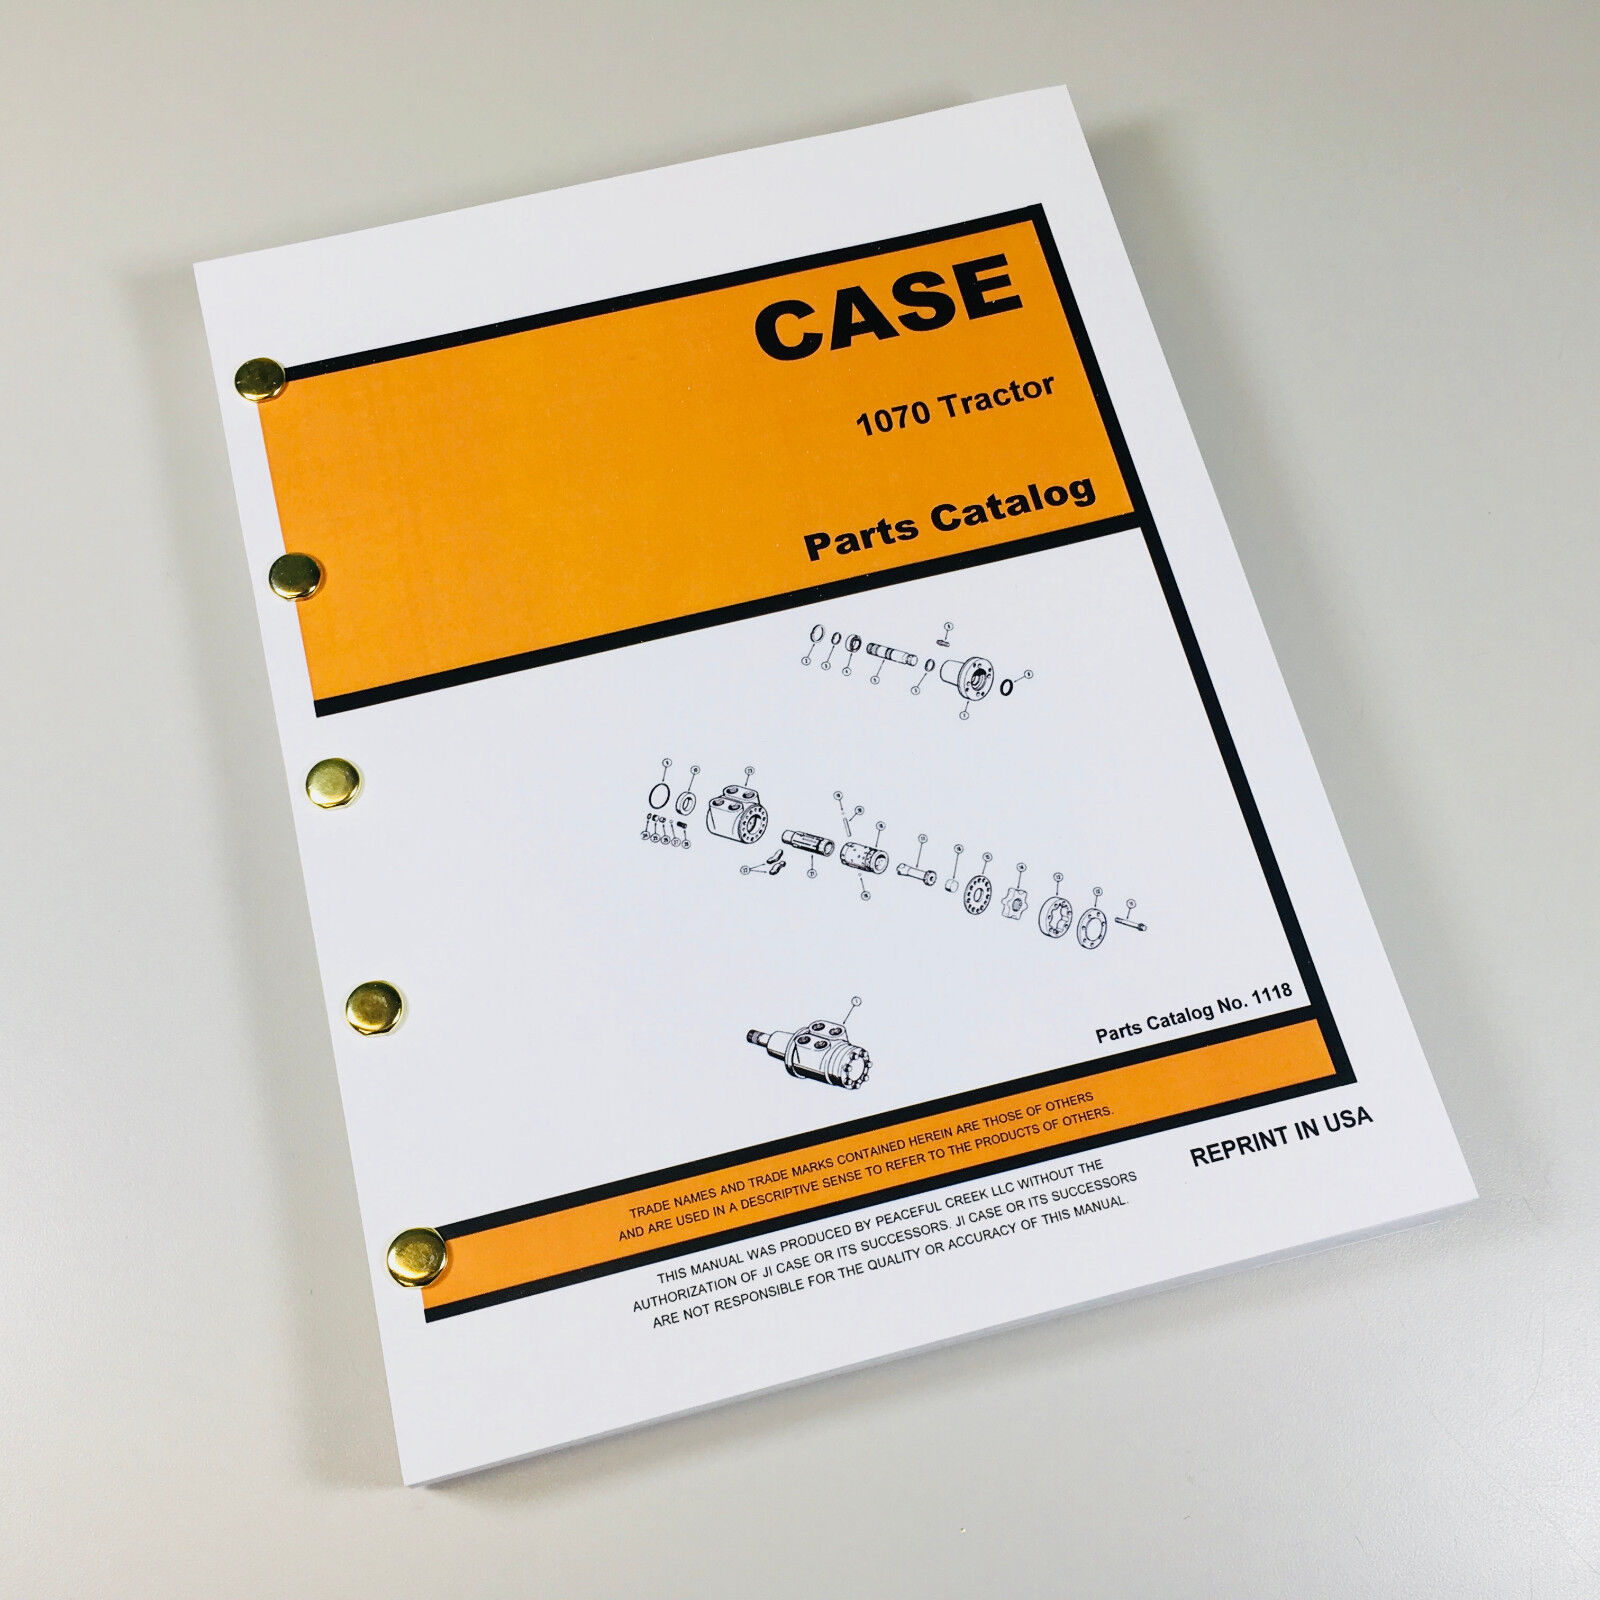 Case 1070 Parts Catalog. Fully Covers all years and serial numbers 1070  Tractor